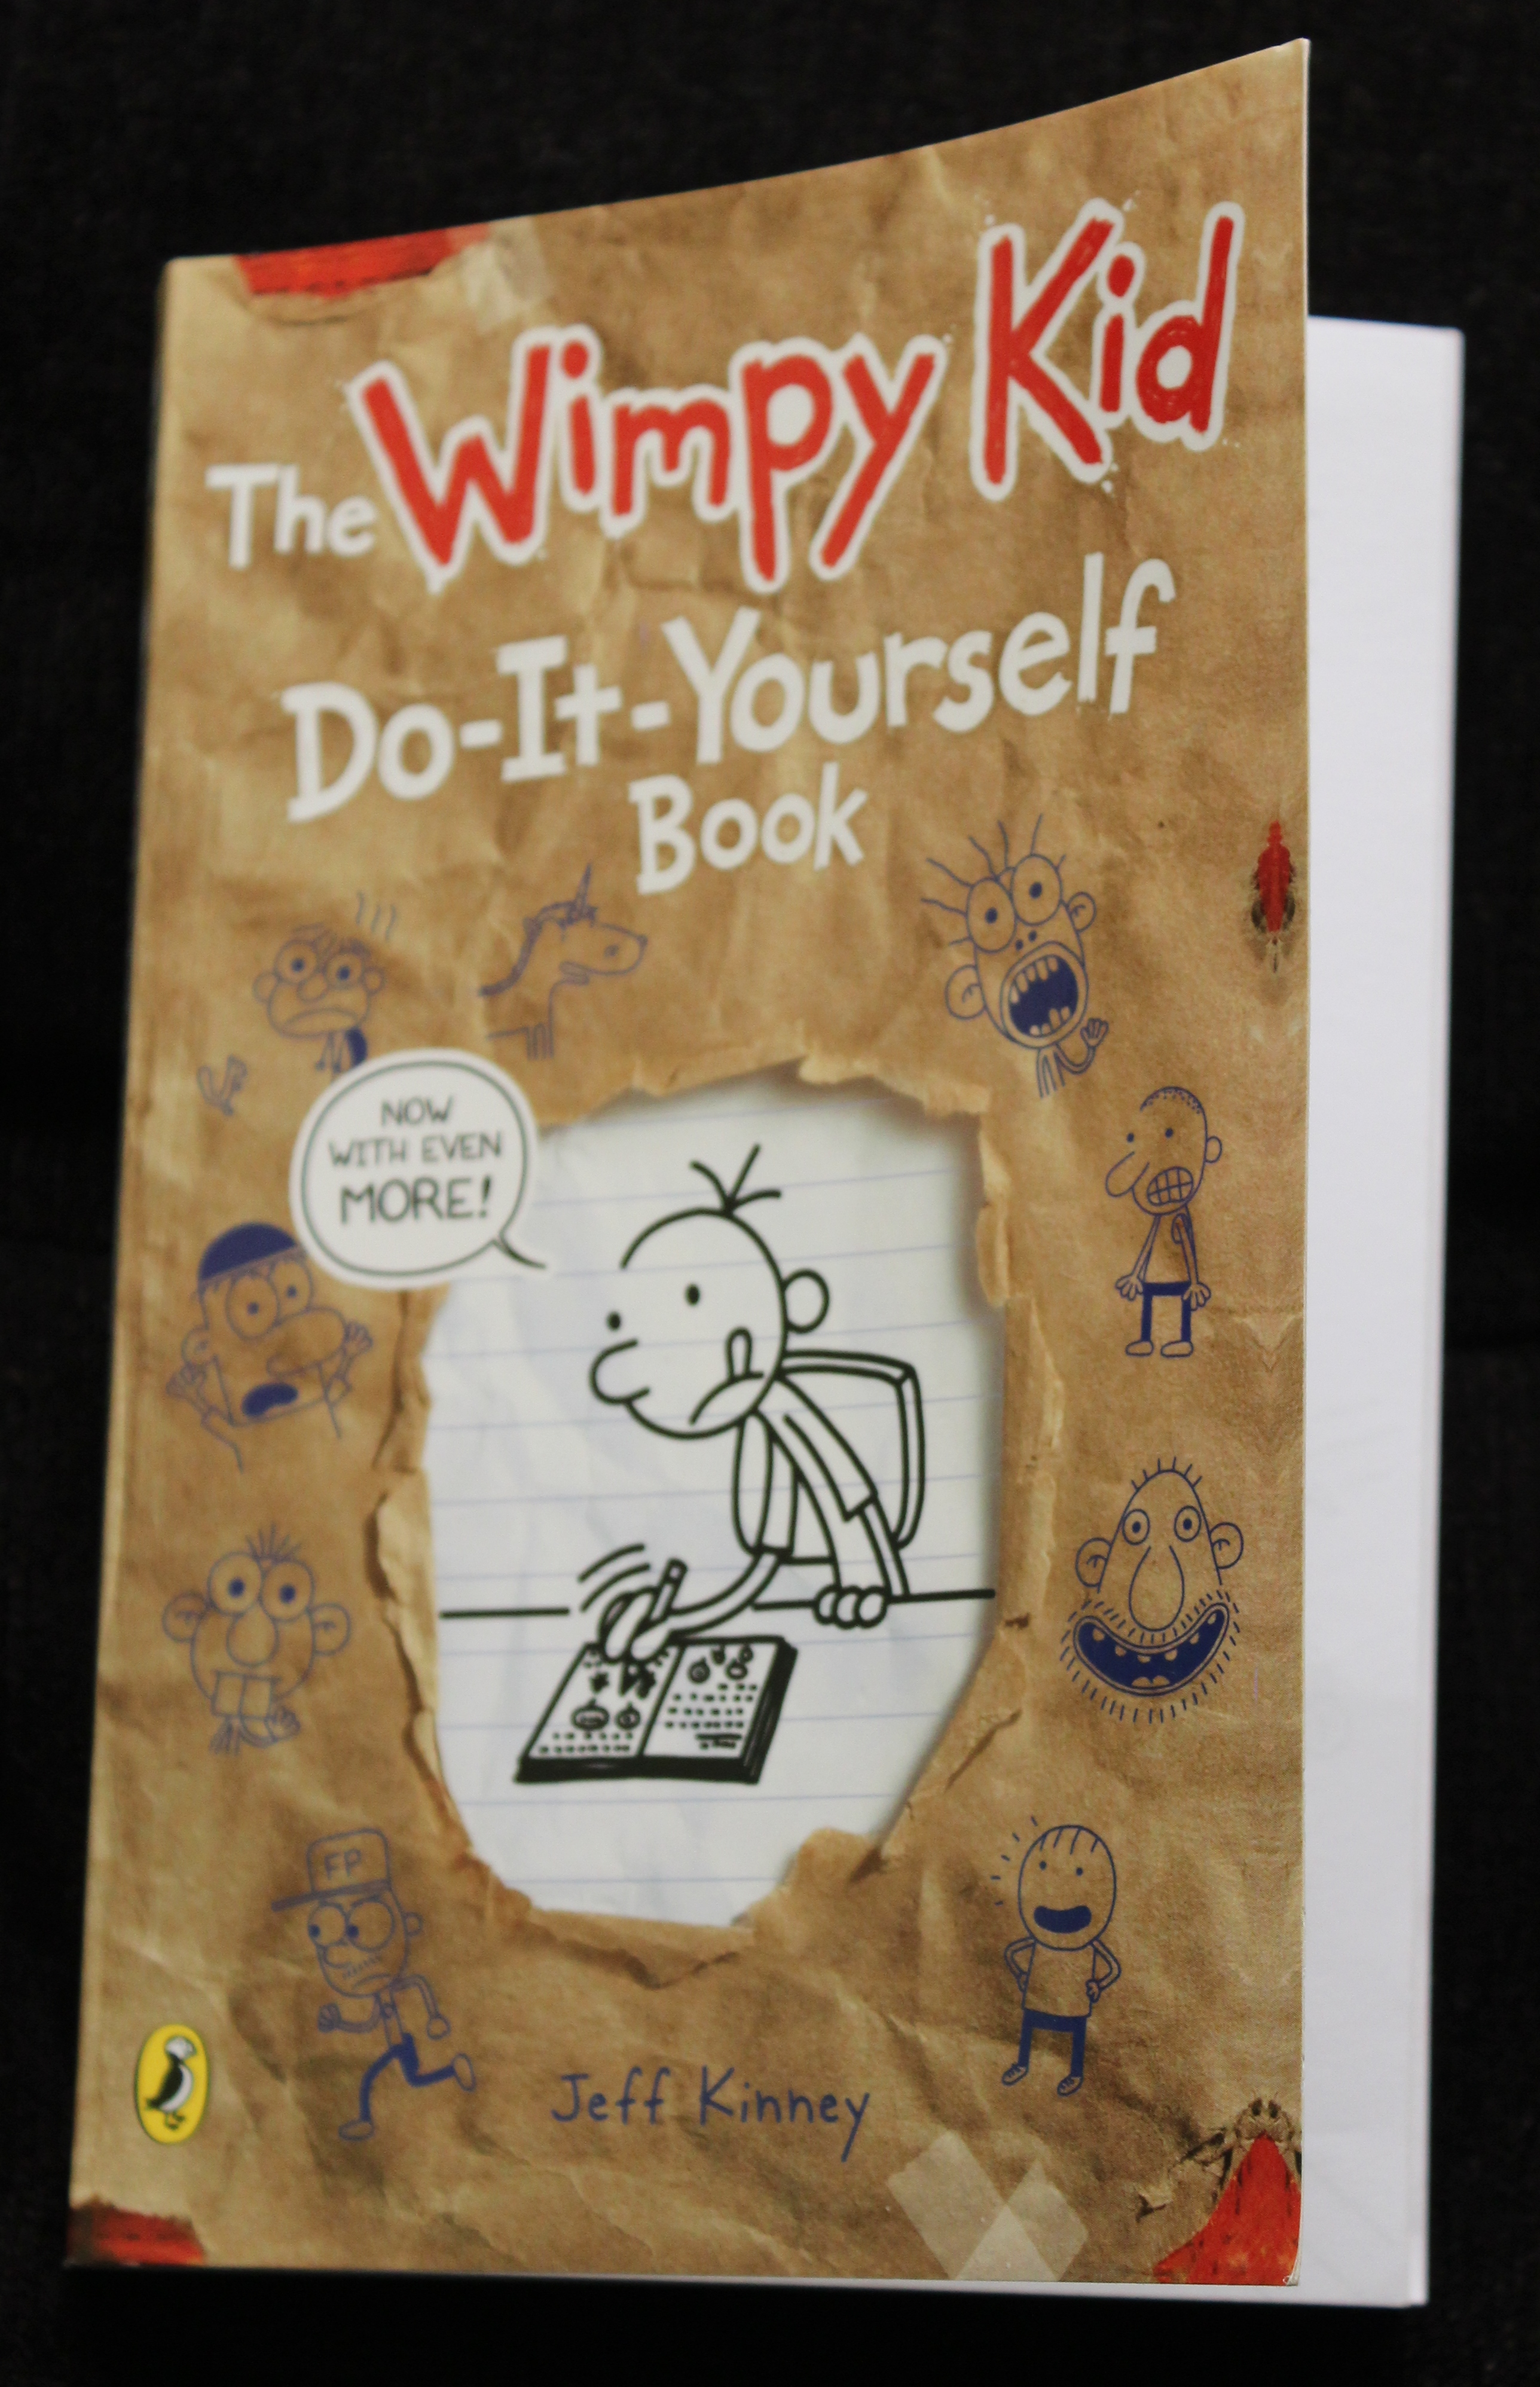 The Wimpy Kid - Do-It-Yourself Book by Jeff Kinney (Book Review in mirandavoice.com)